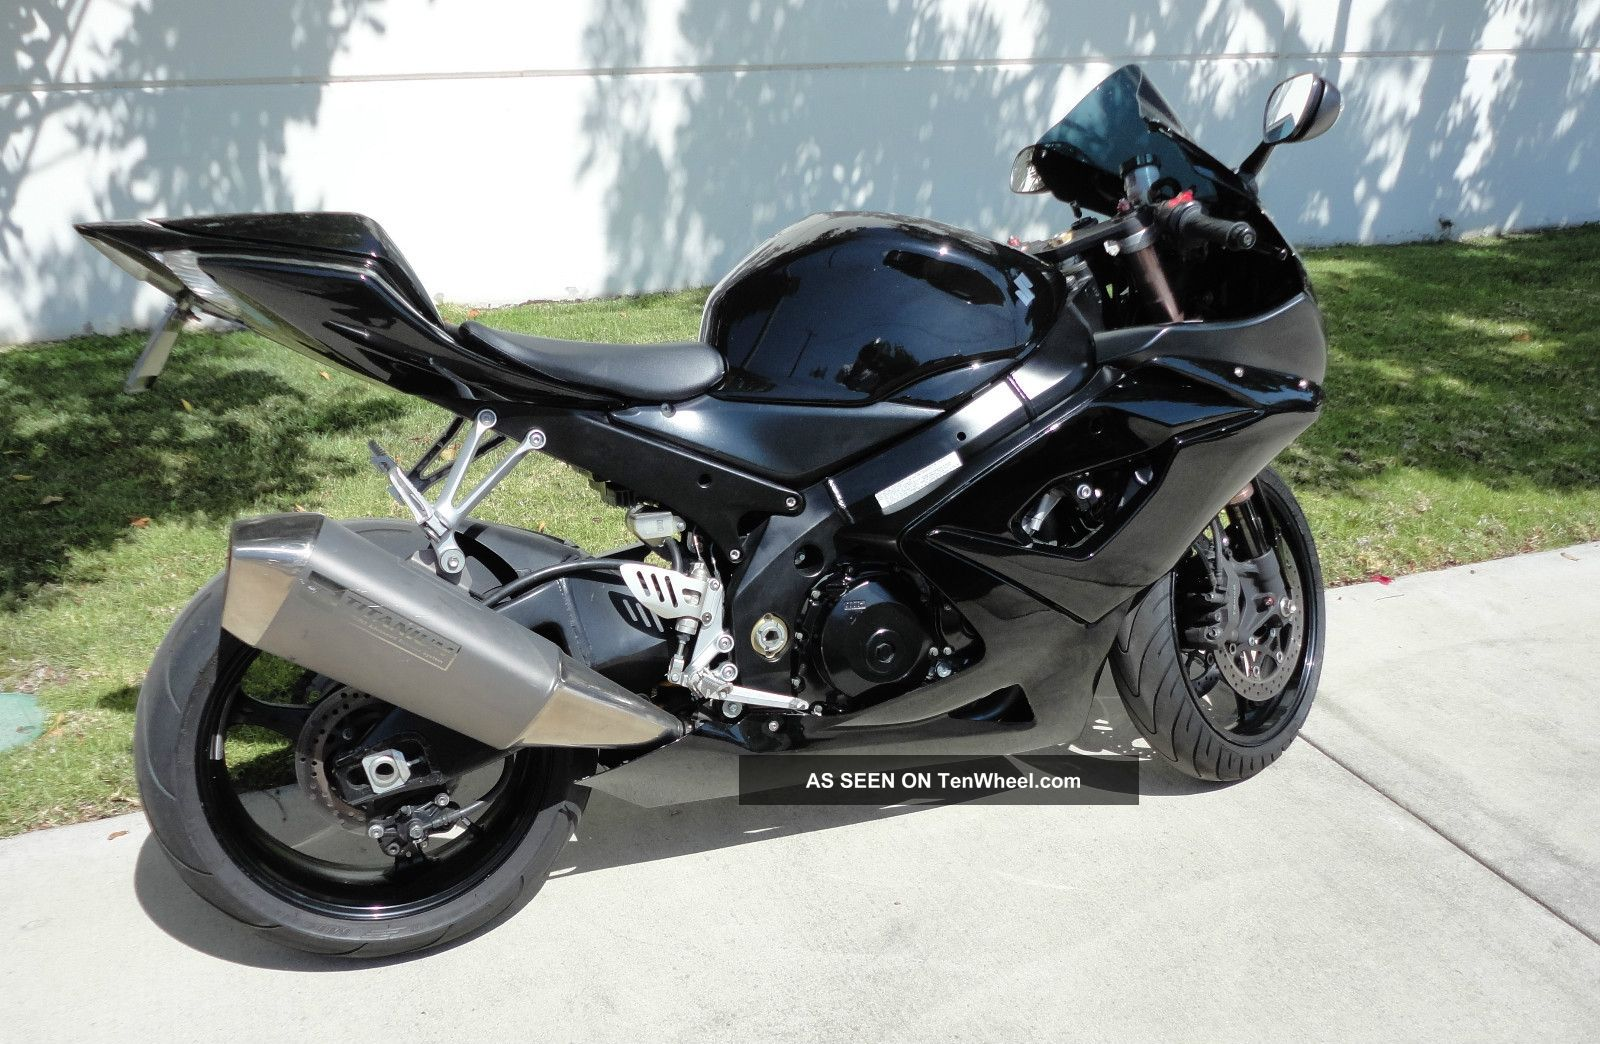 suzuki gsxr 1000 2006. Black Bedroom Furniture Sets. Home Design Ideas